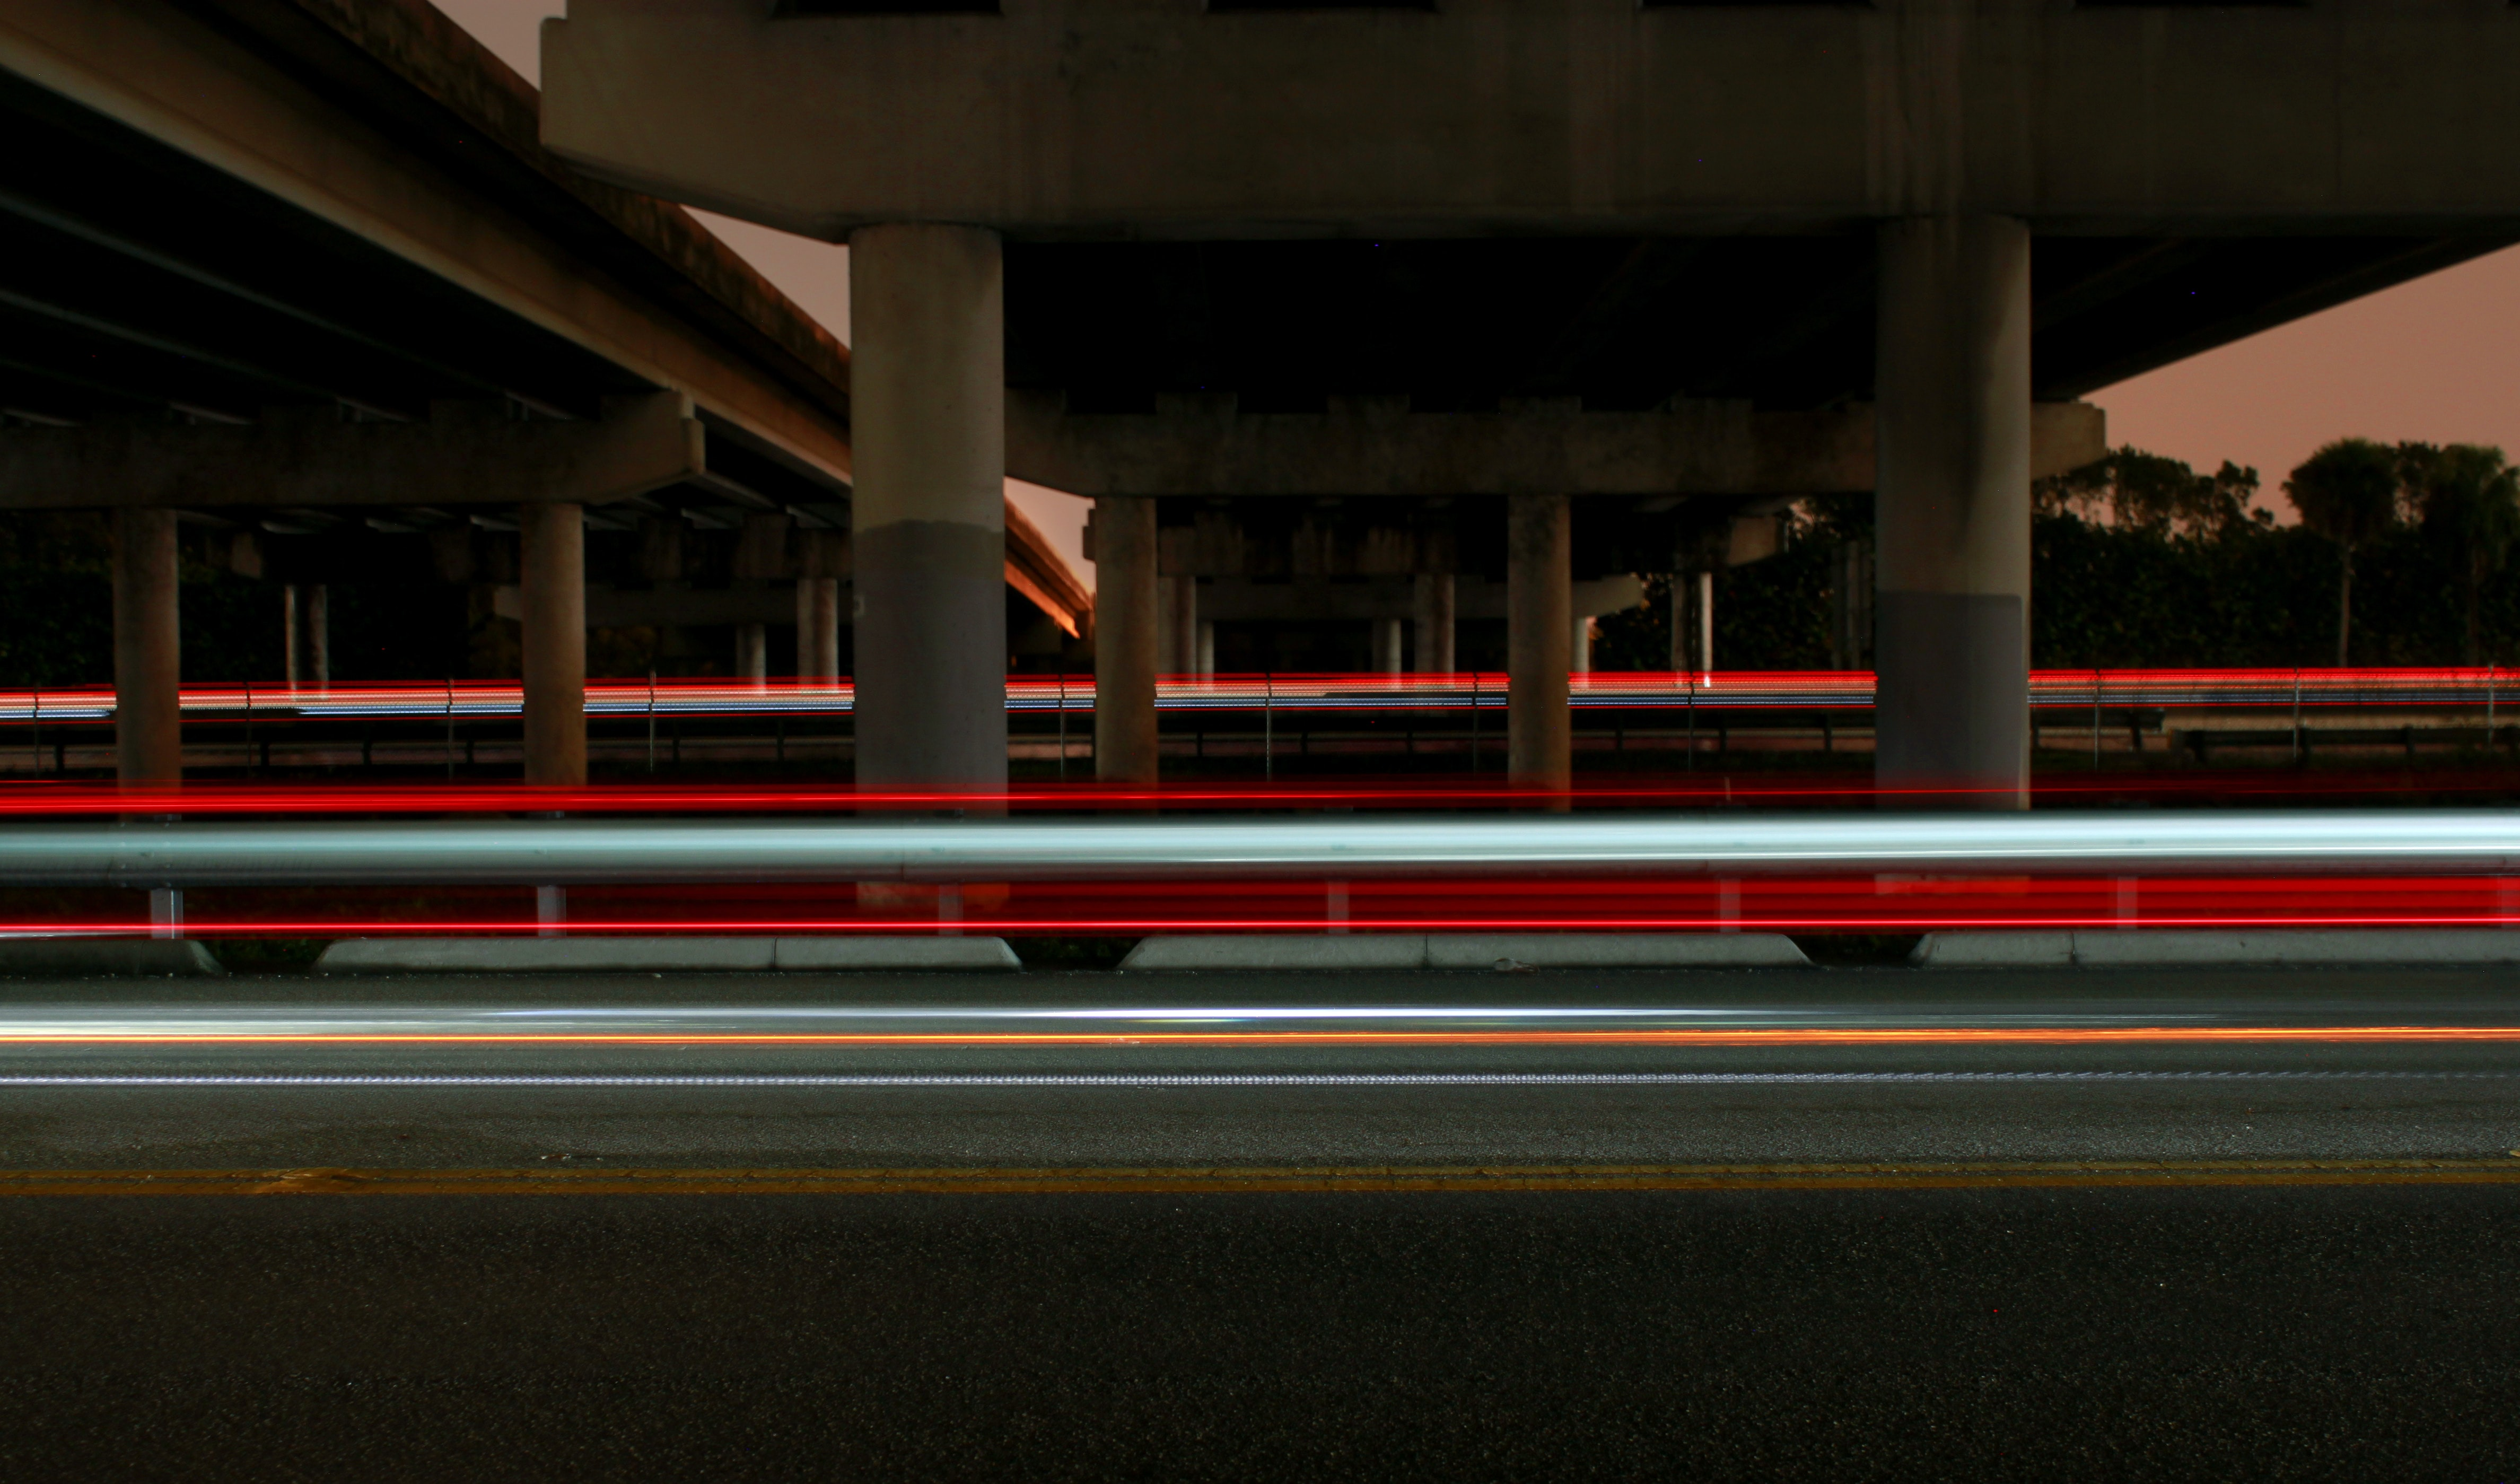 timelapse photography of vehicle light crossing on road under concrete dock